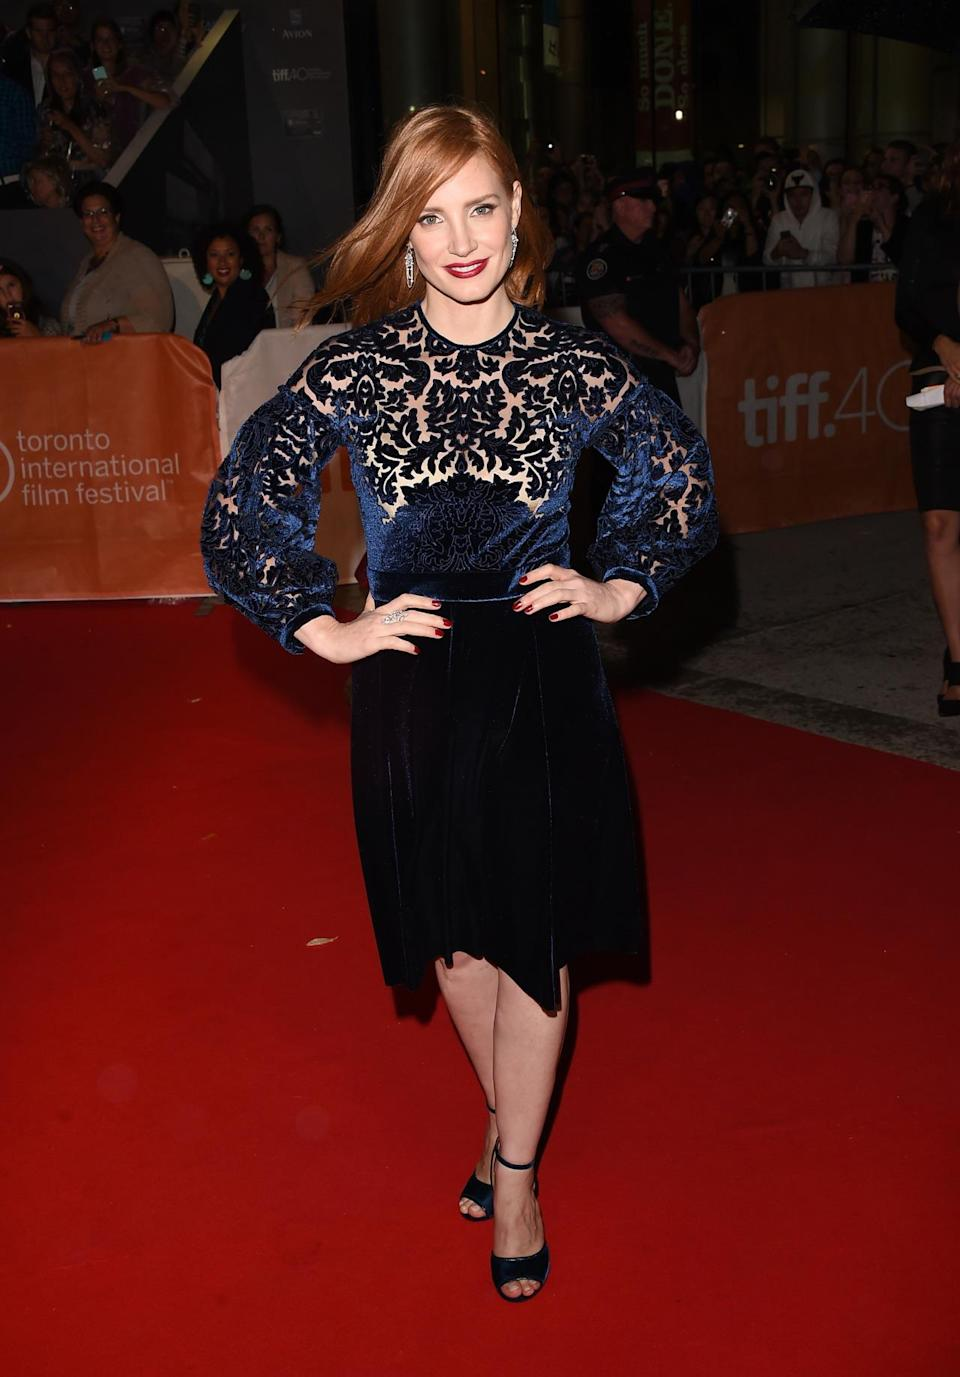 <p>She might not have worn face jewelry, but Jessica Chastain still shined at the film's TIFF debut in a navy blue velvet dress with a midi-hemline and matching shoes. </p>